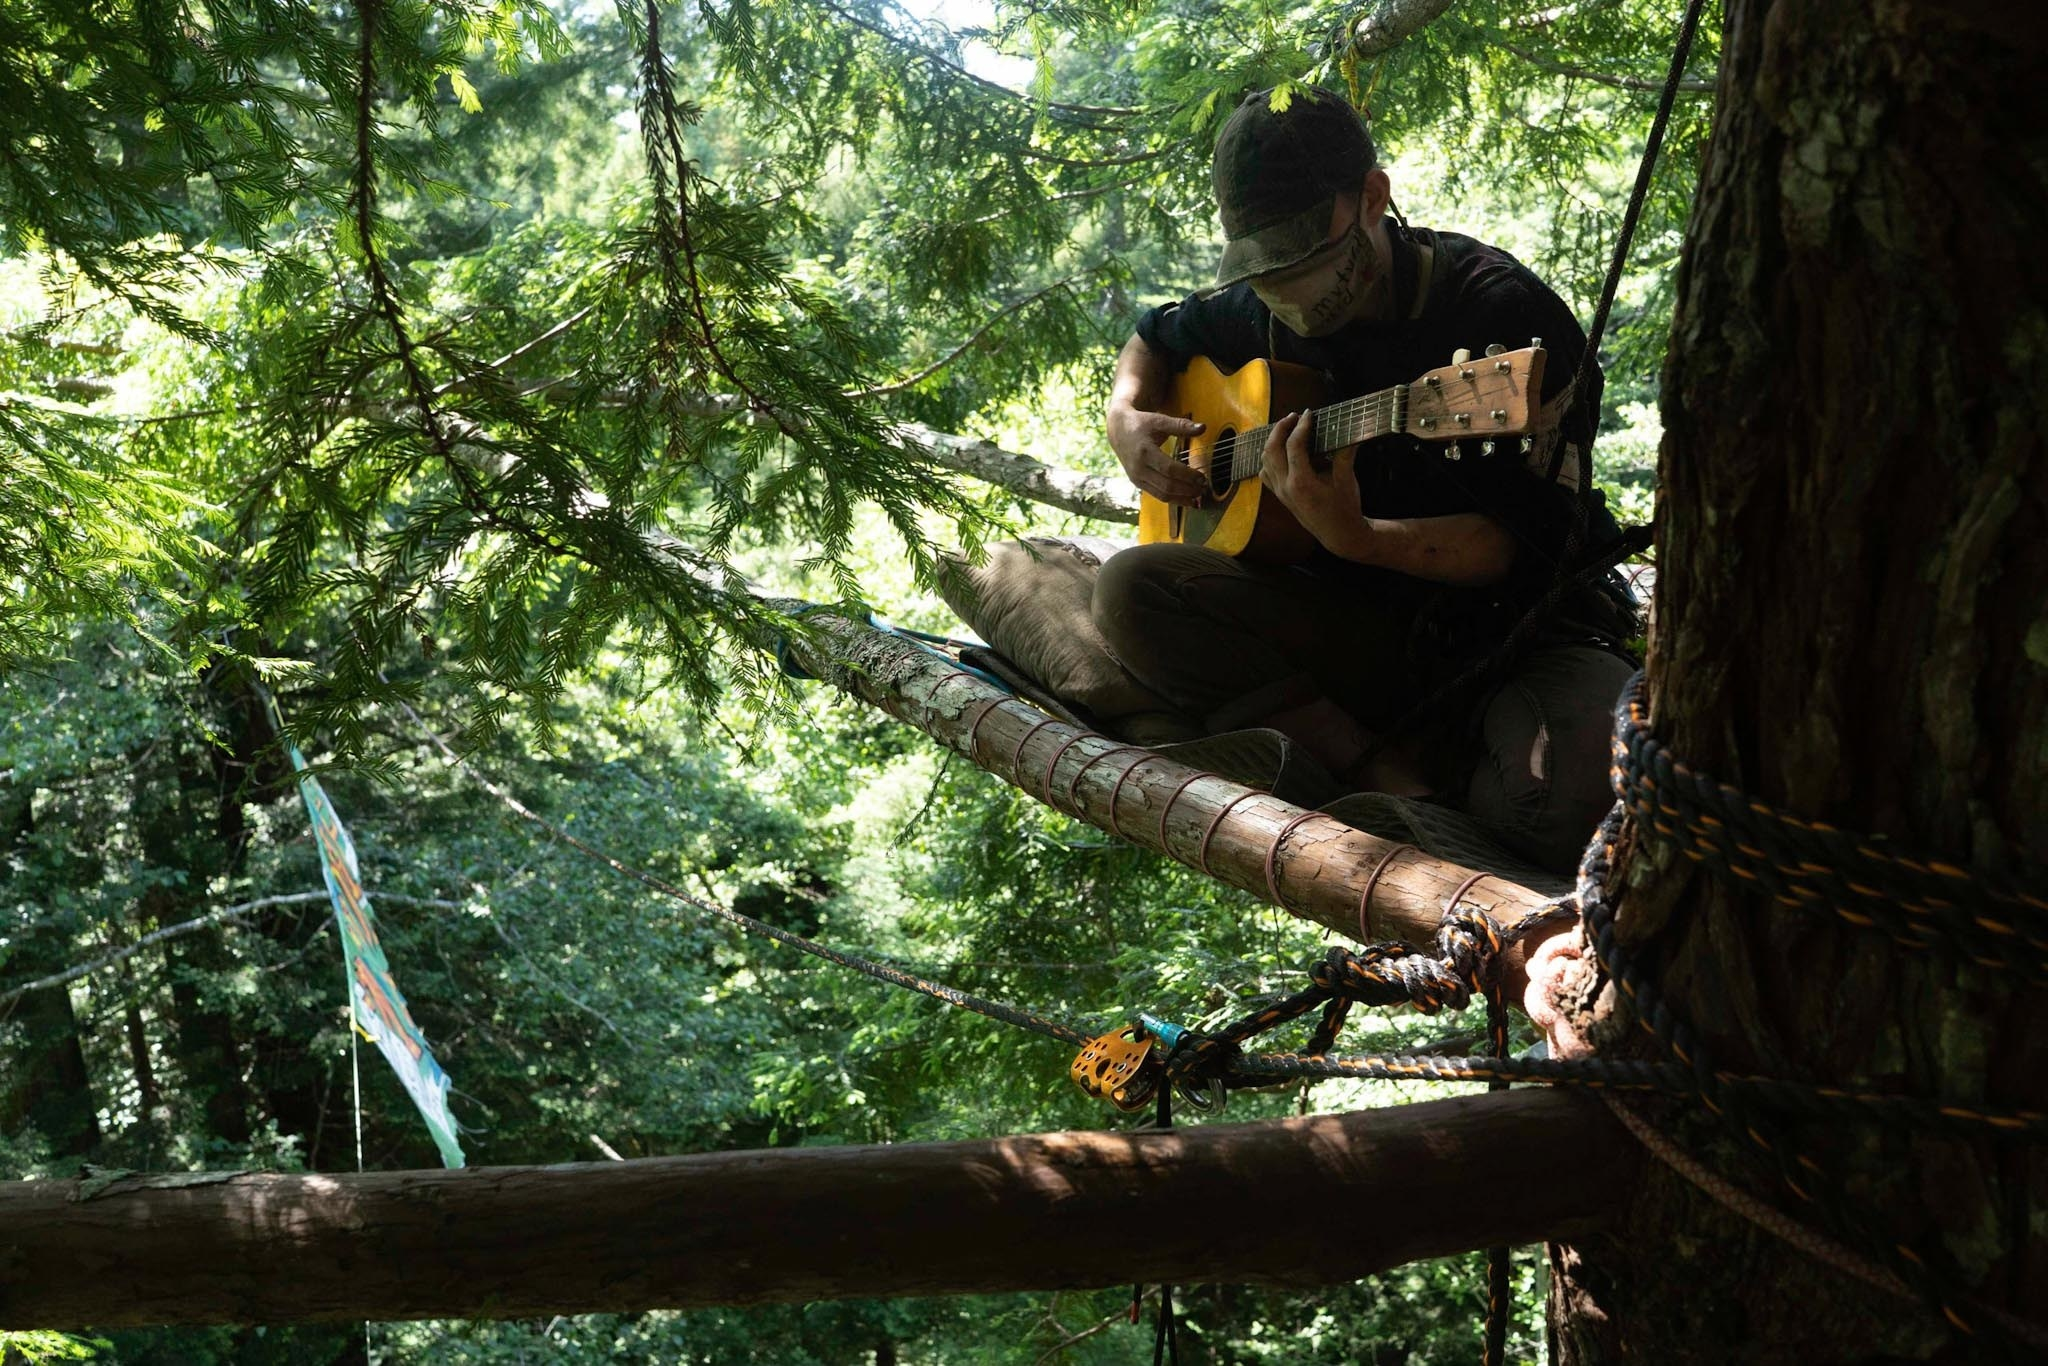 A person wearing a mask and a hat playing guitar on a platform in a tree